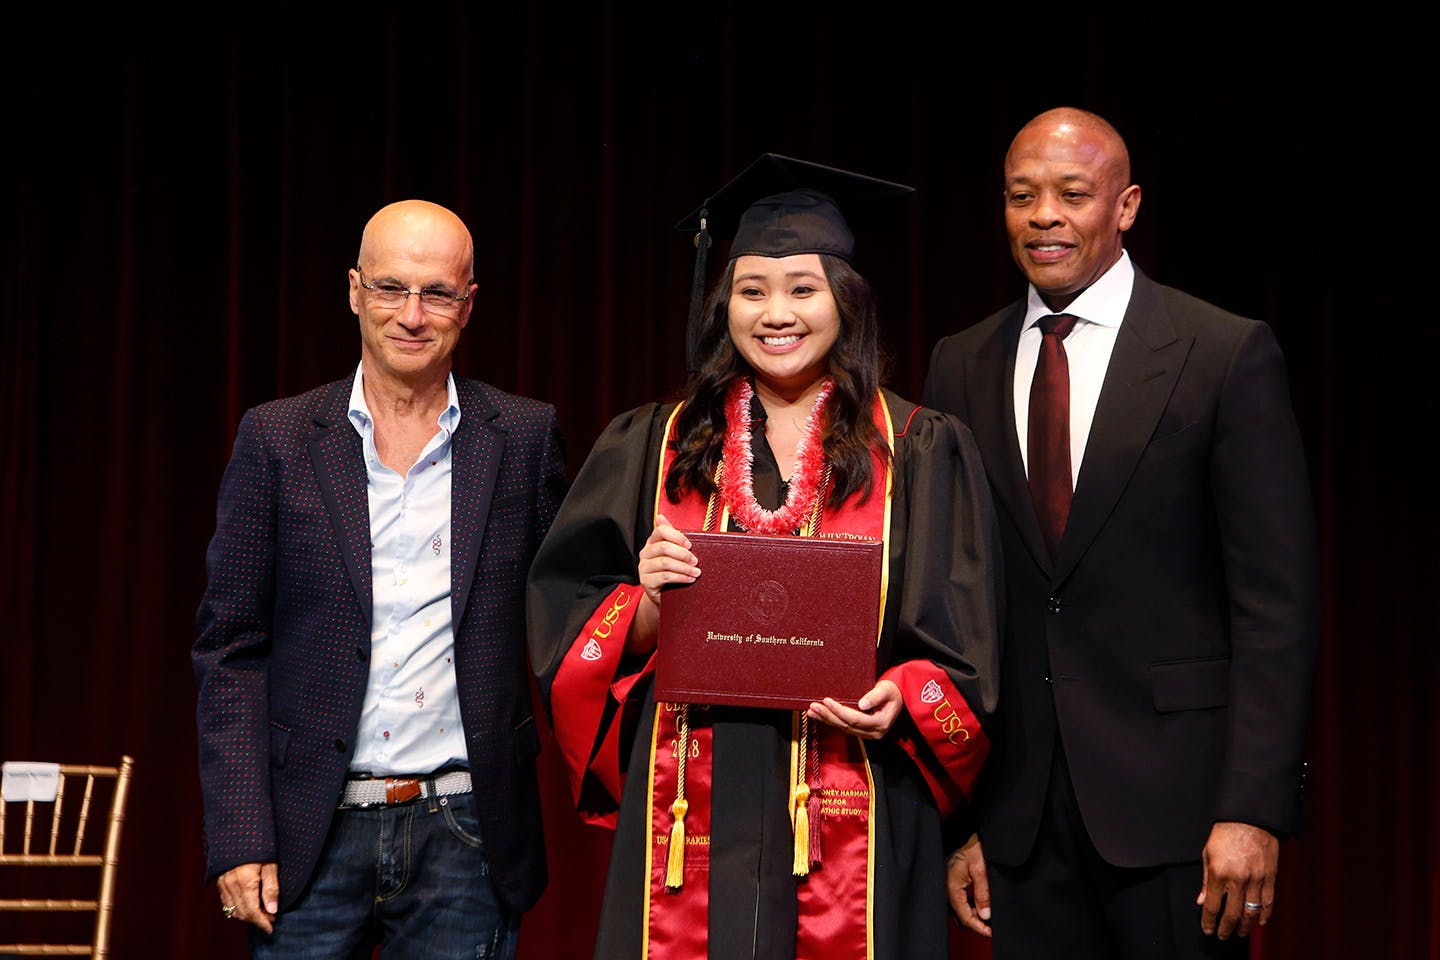 Two men pose with graduating student holding diploma